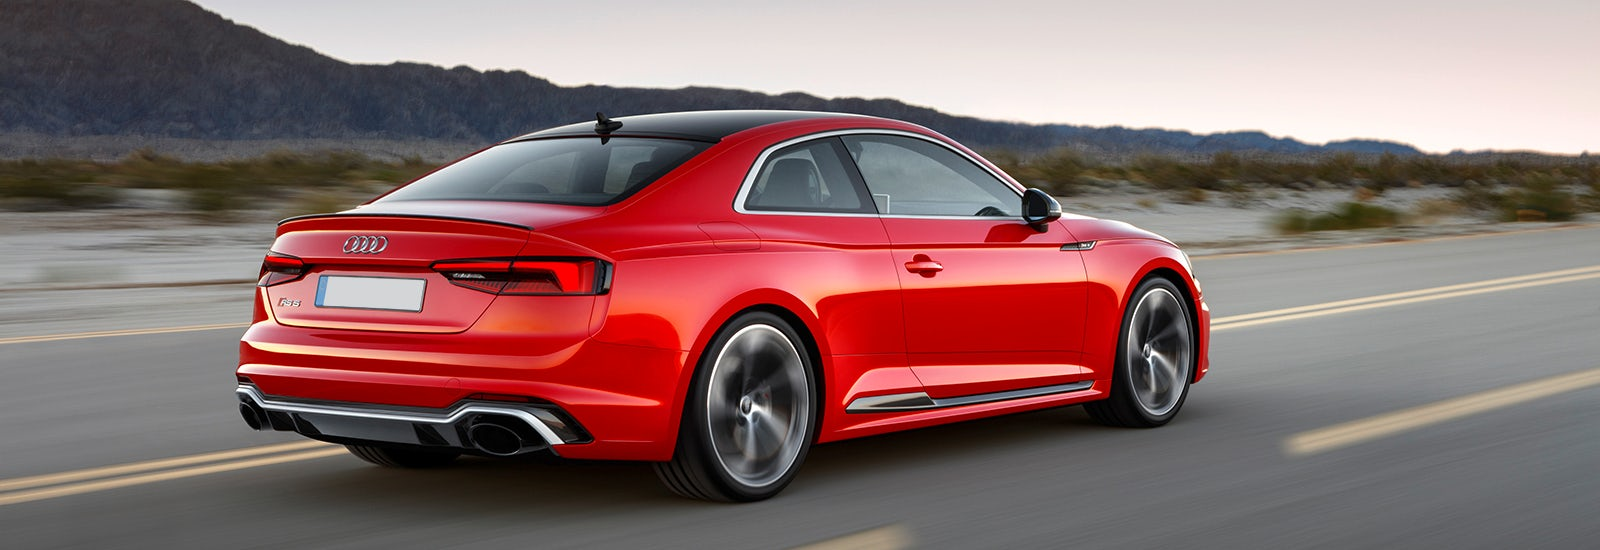 2018 audi rs5 price specs and release date carwow. Black Bedroom Furniture Sets. Home Design Ideas